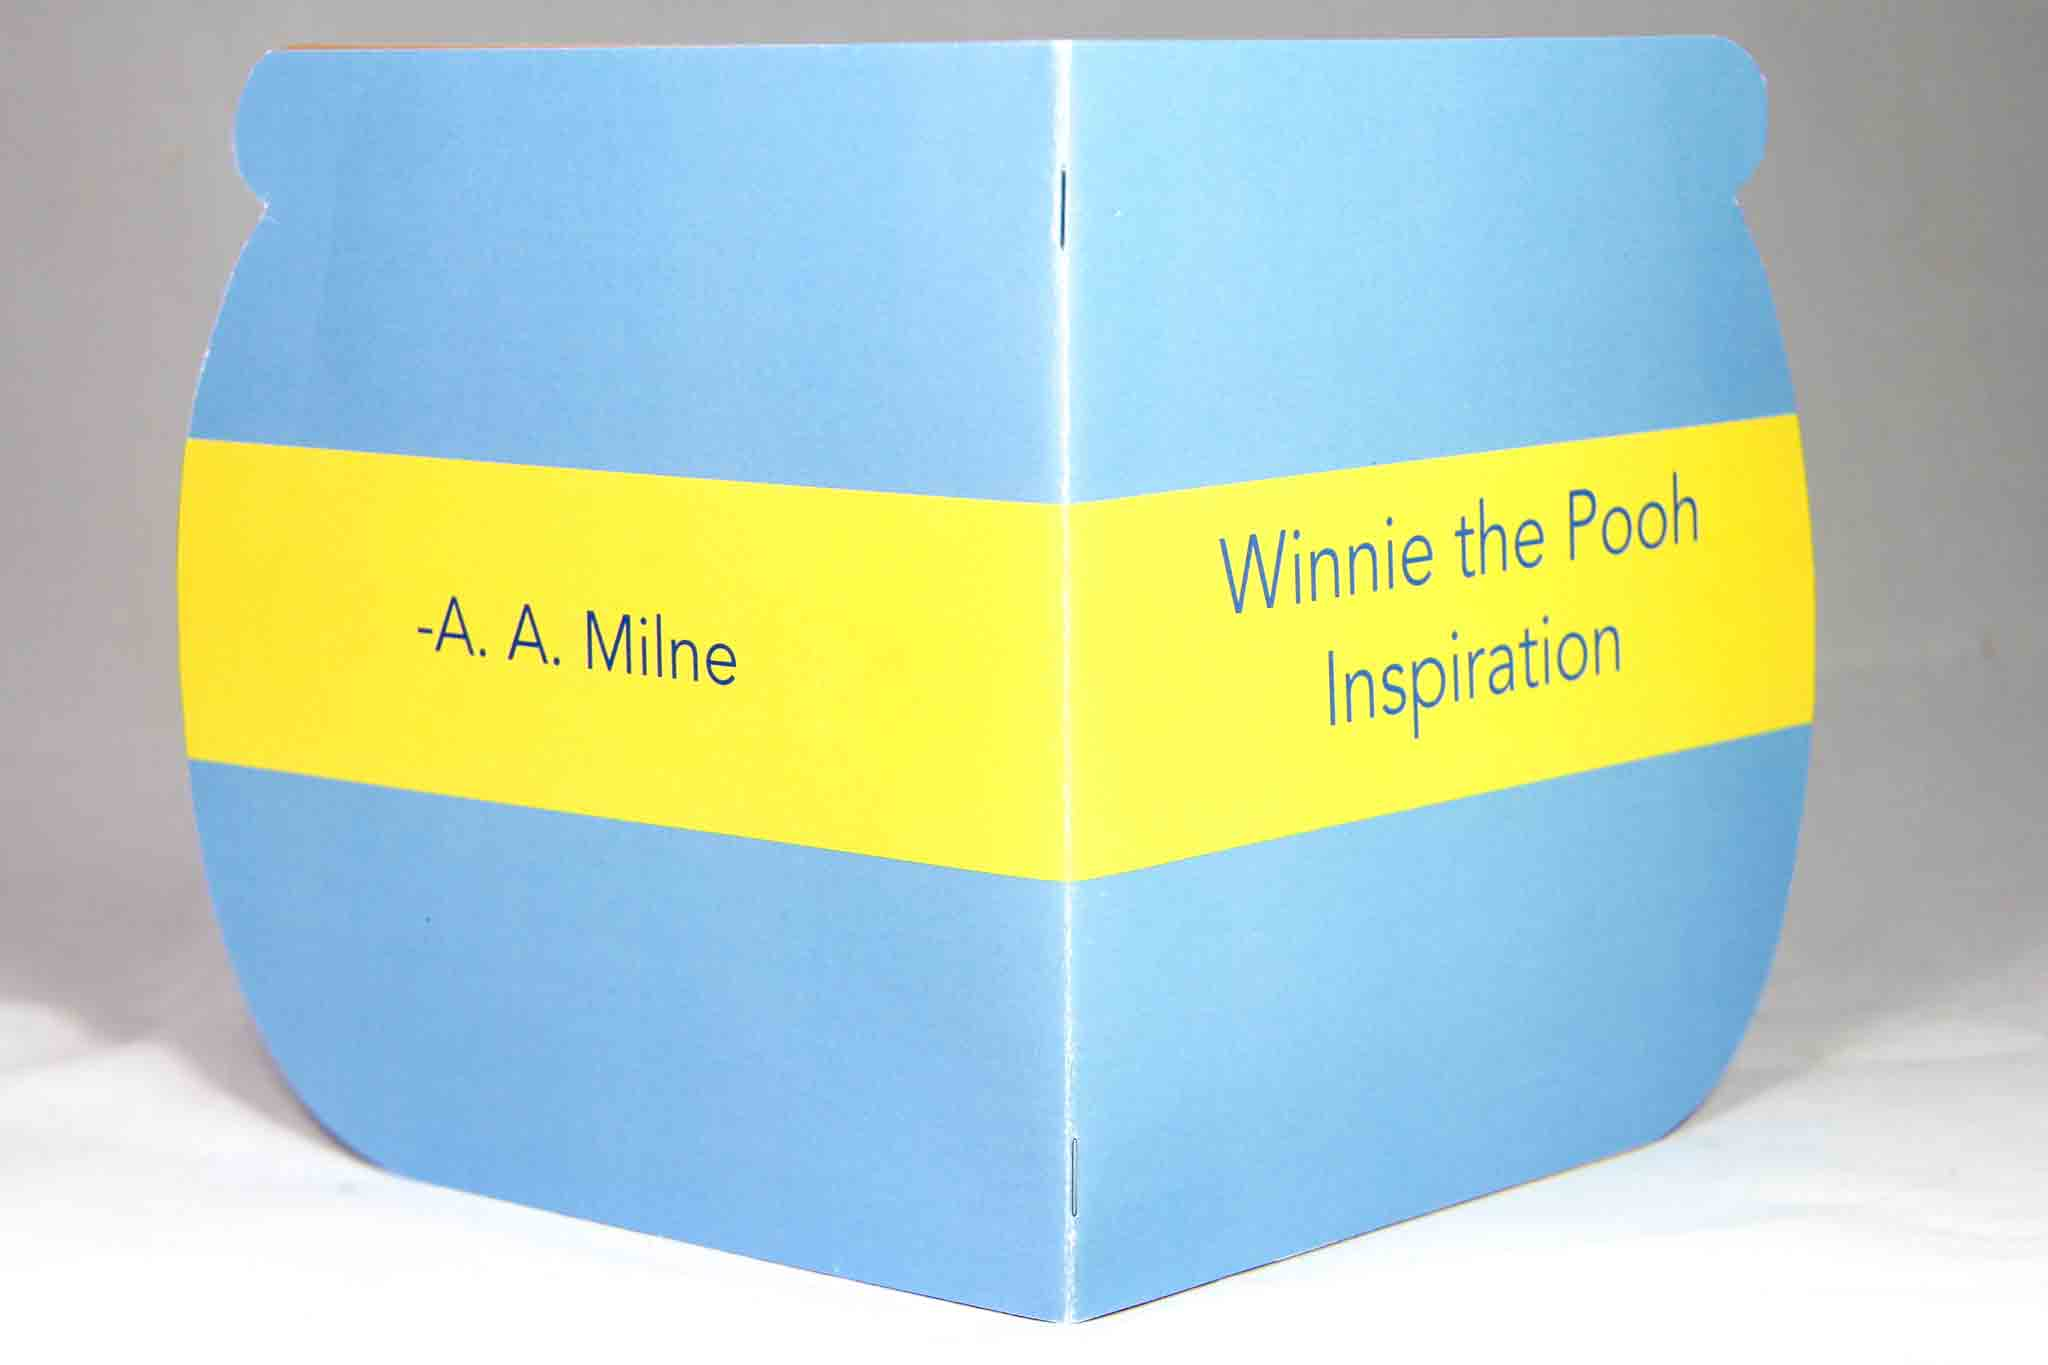 winnie the pooh illustrations for quote booklet